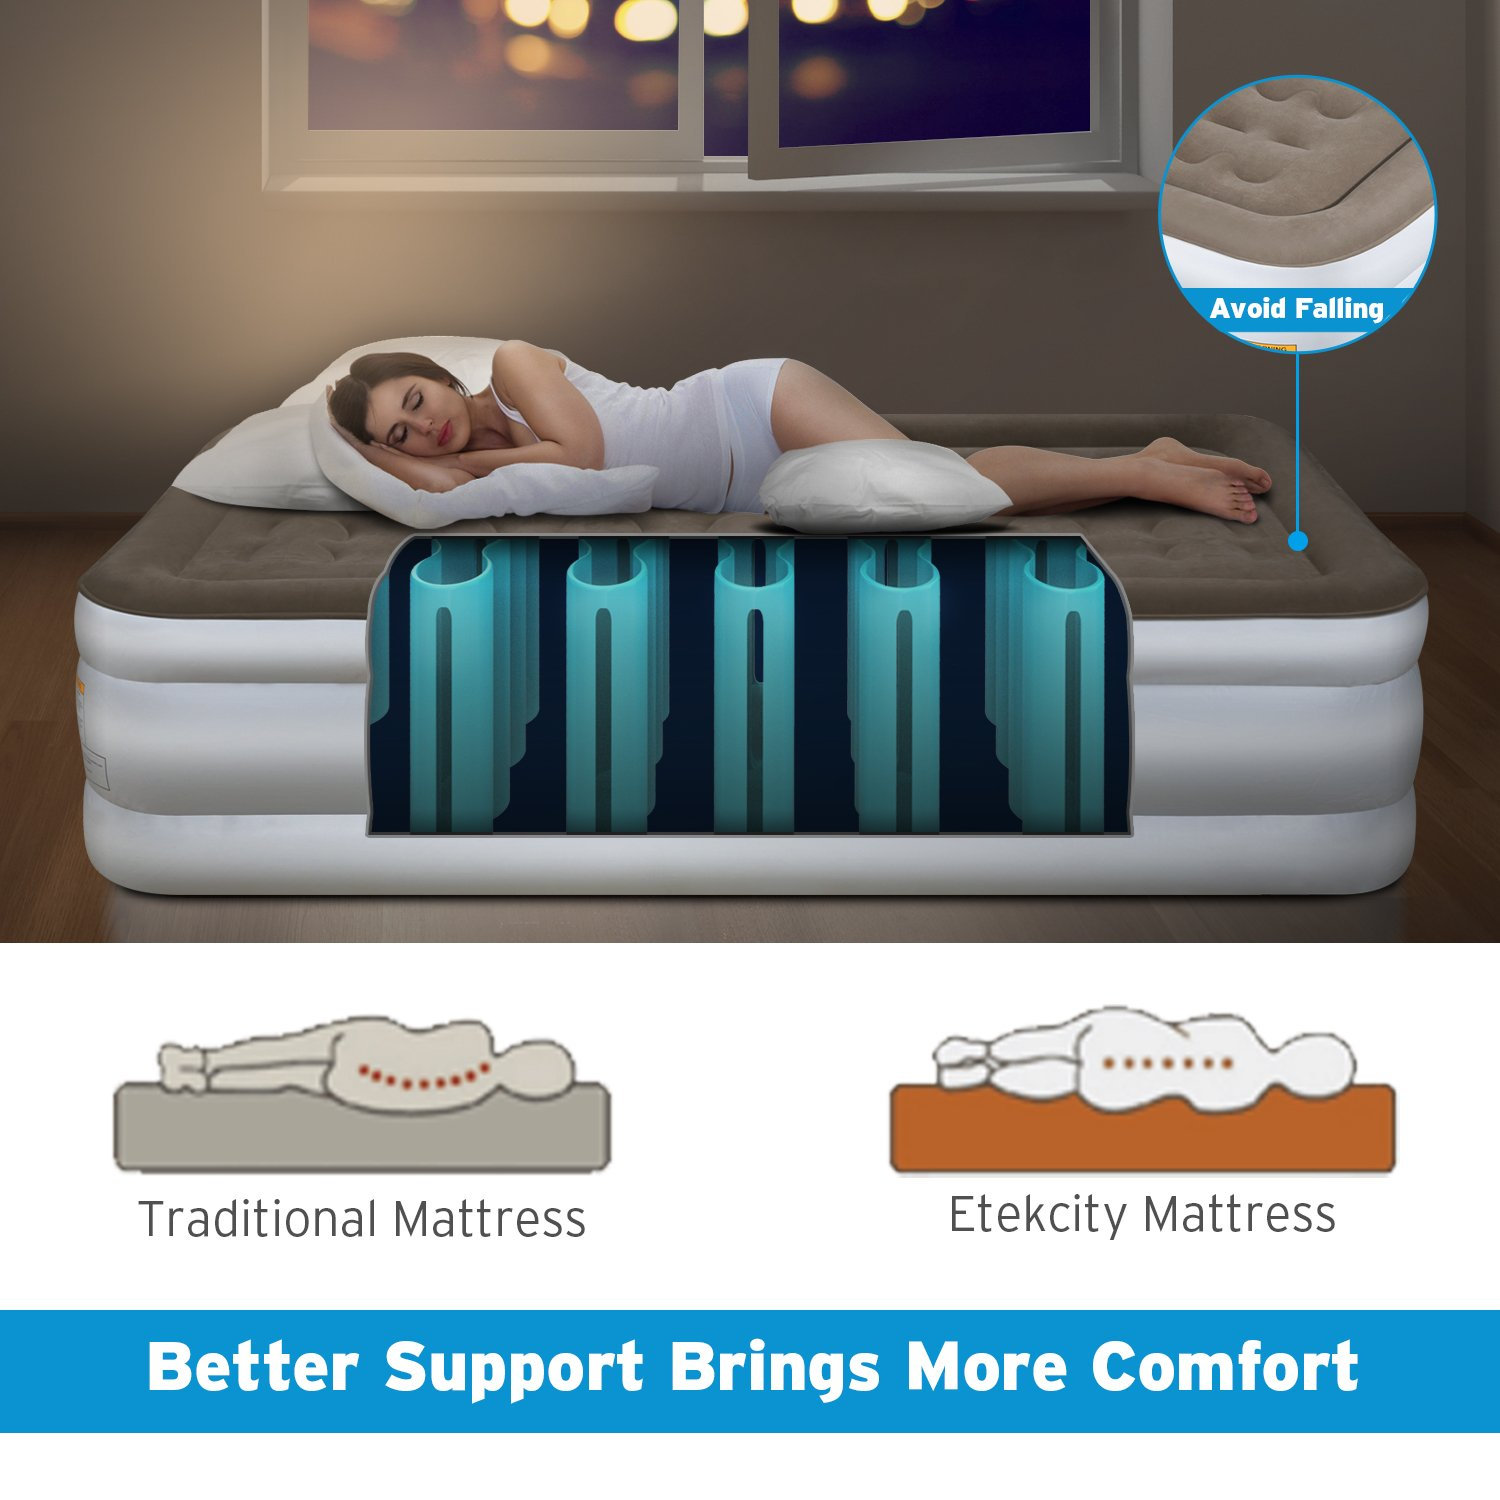 Etekcity 2 Pack Upgraded Air Mattress Blow Up Raised Airbed with Built-in High Capacity Pump, Height 18'', Twin Size by Etekcity (Image #3)